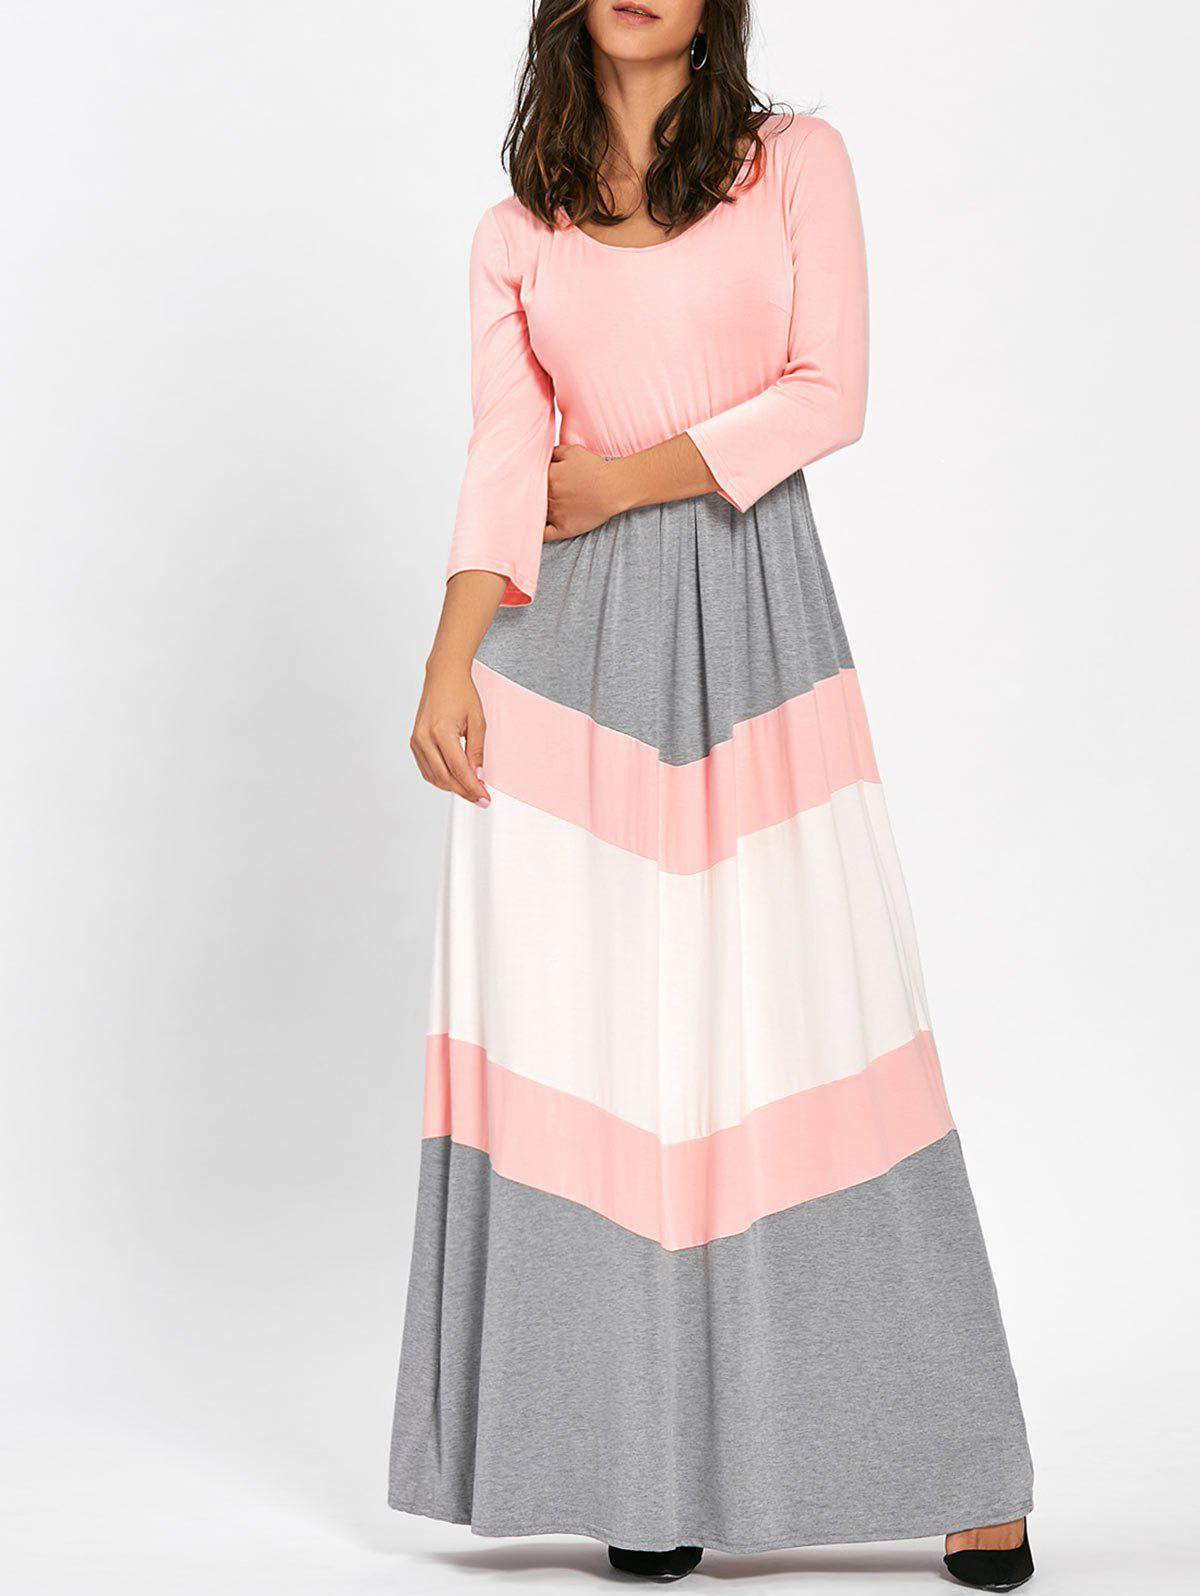 Robe Maxi à rayures Chevrolet Scoop Neck - ROSE PÂLE S